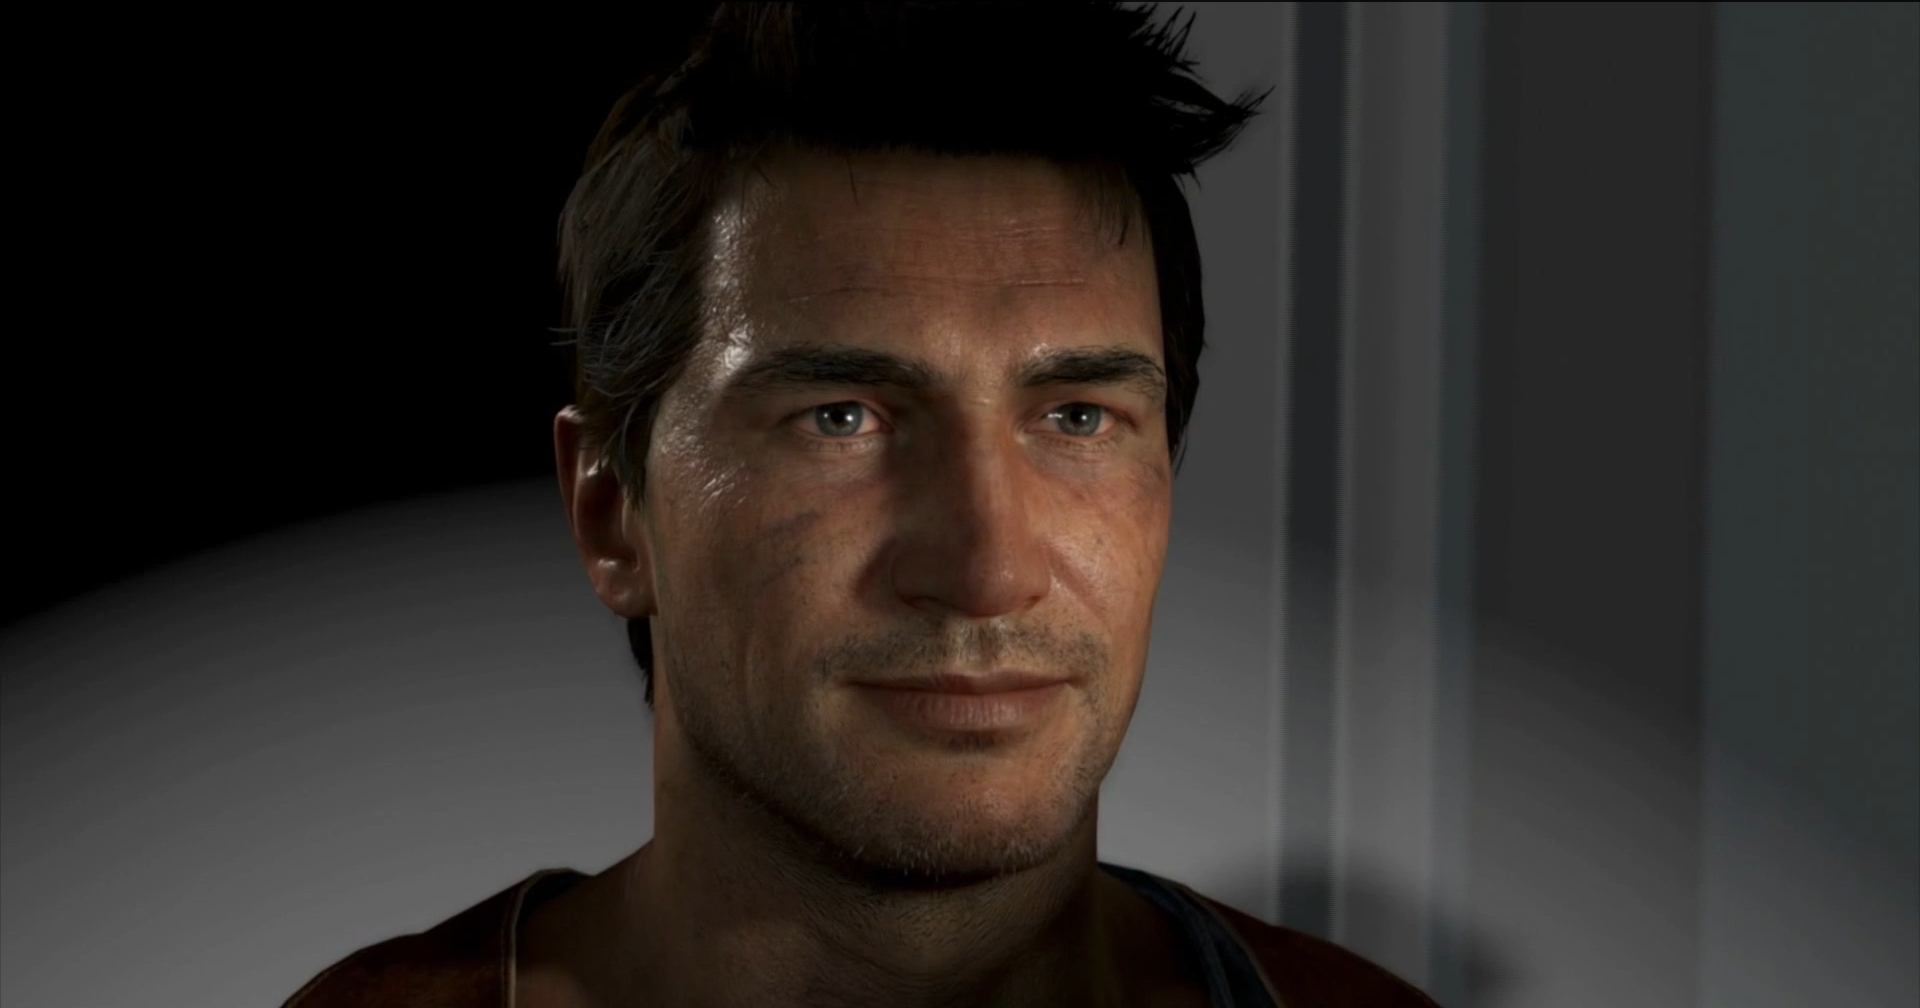 Uncharted 4/ Final Fantasy XV Quality Character Models in